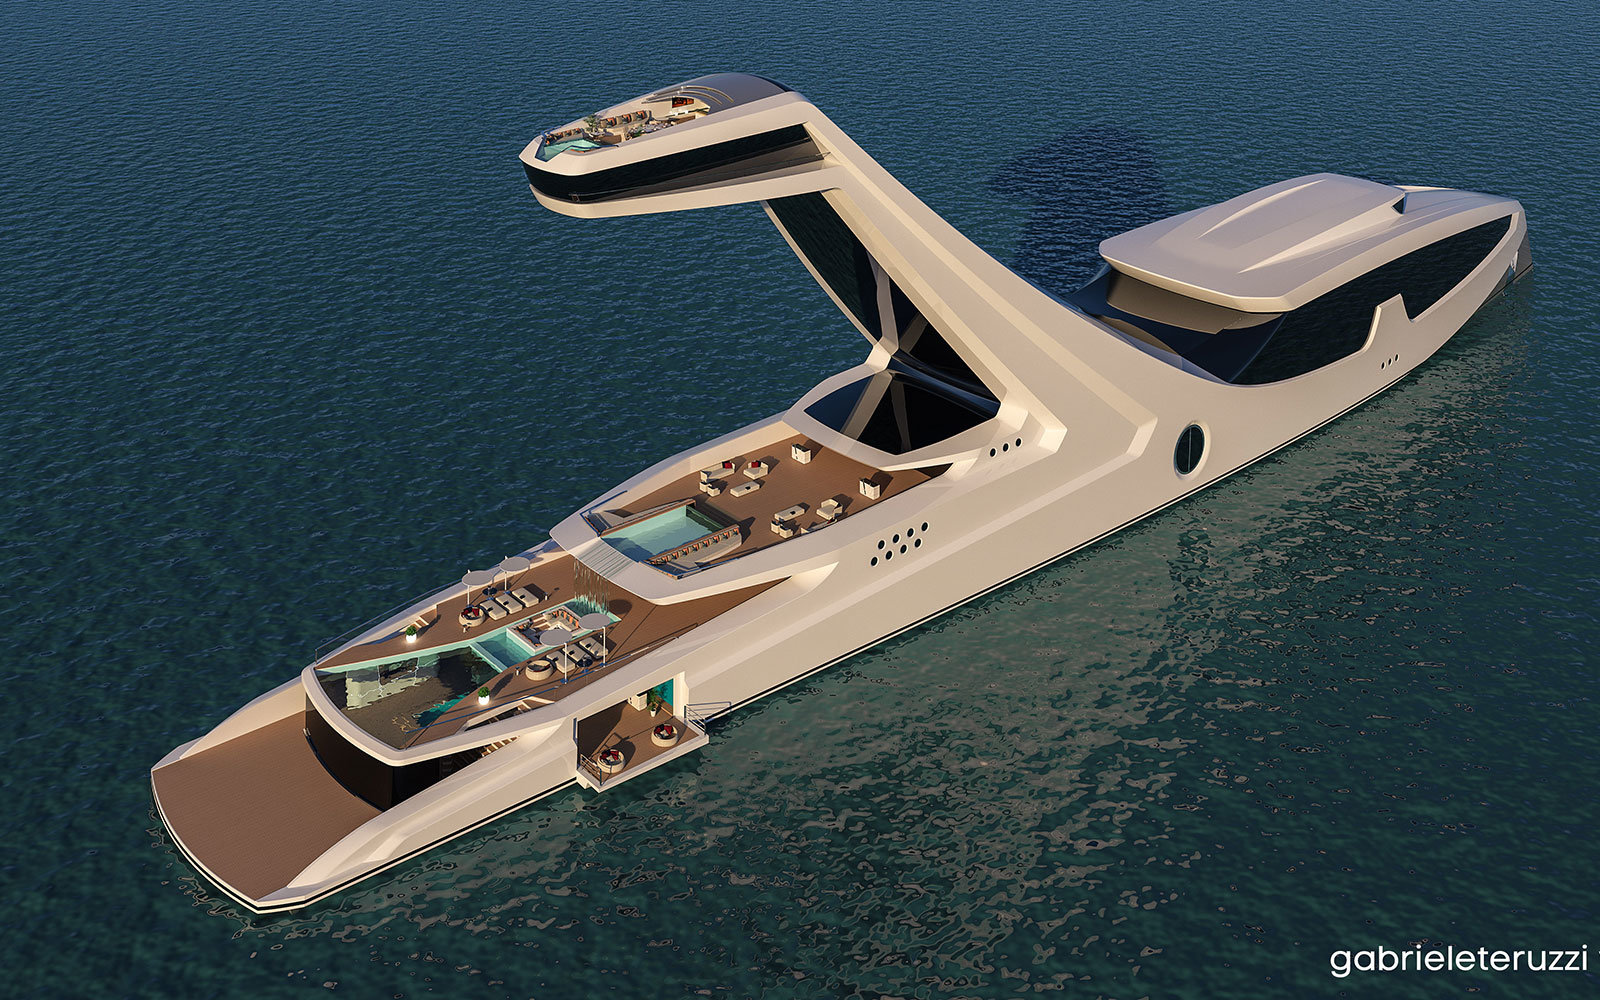 World's tallest yacht